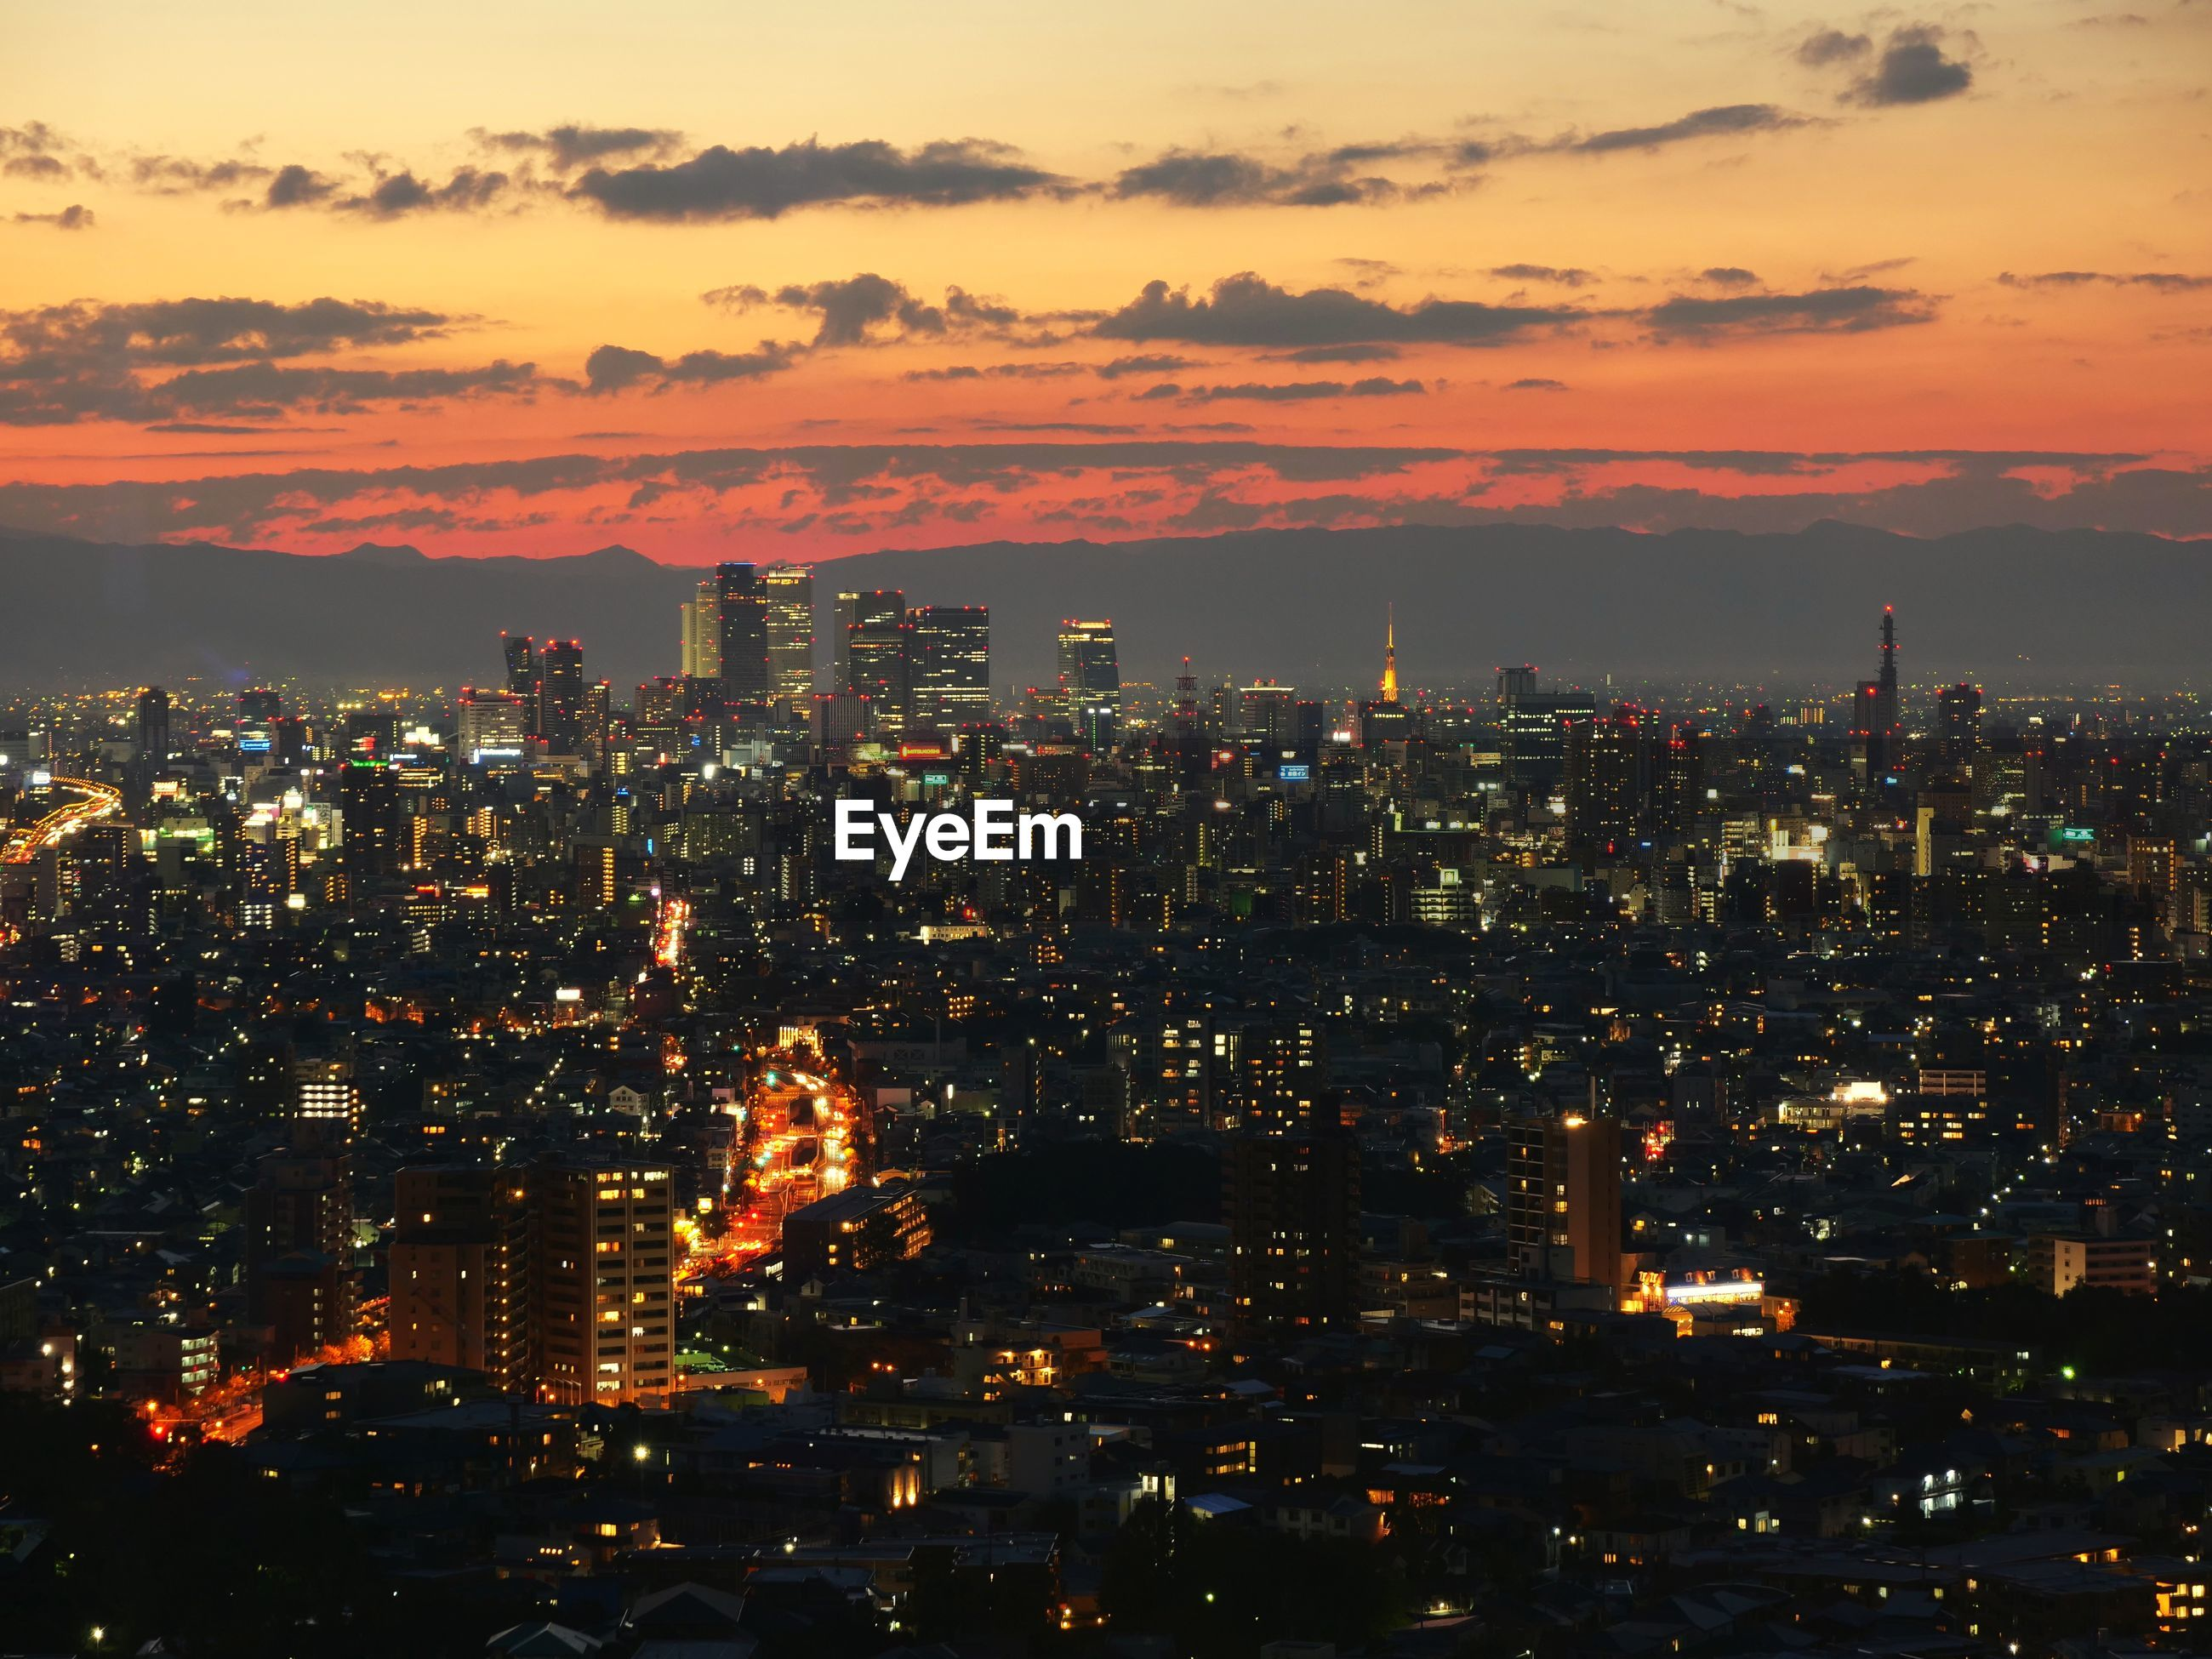 HIGH ANGLE VIEW OF ILLUMINATED CITYSCAPE AGAINST SKY AT SUNSET